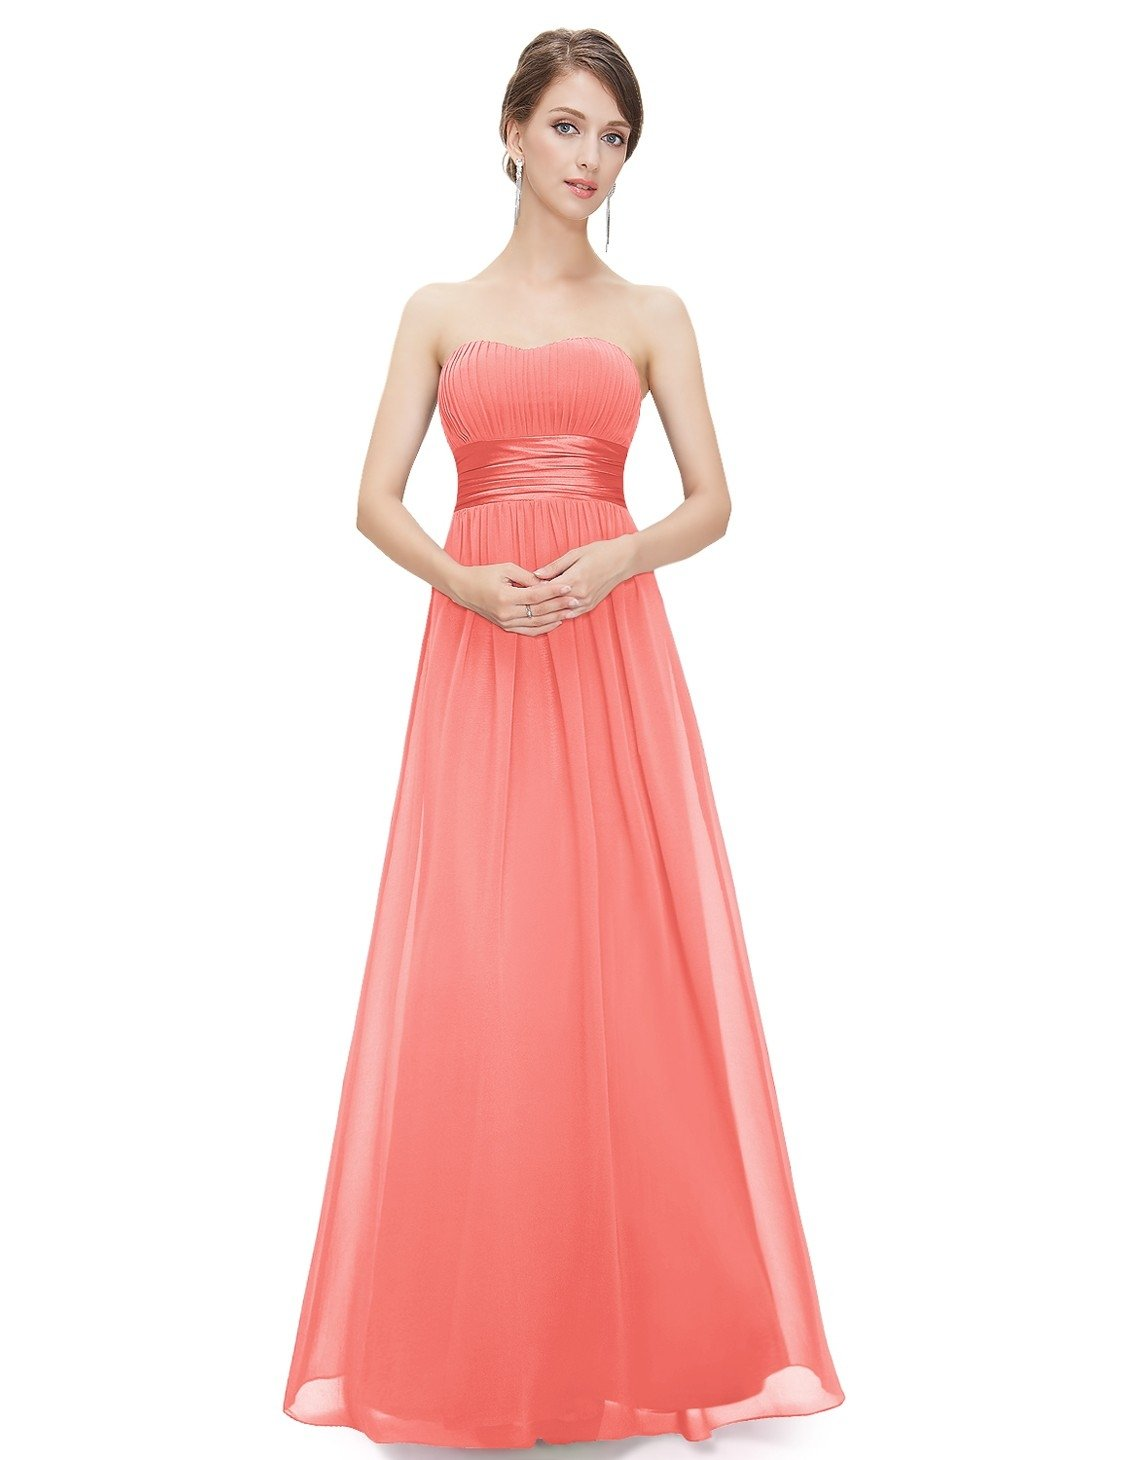 Strapless Empire Waist Long Coral Bridesmaid Dress